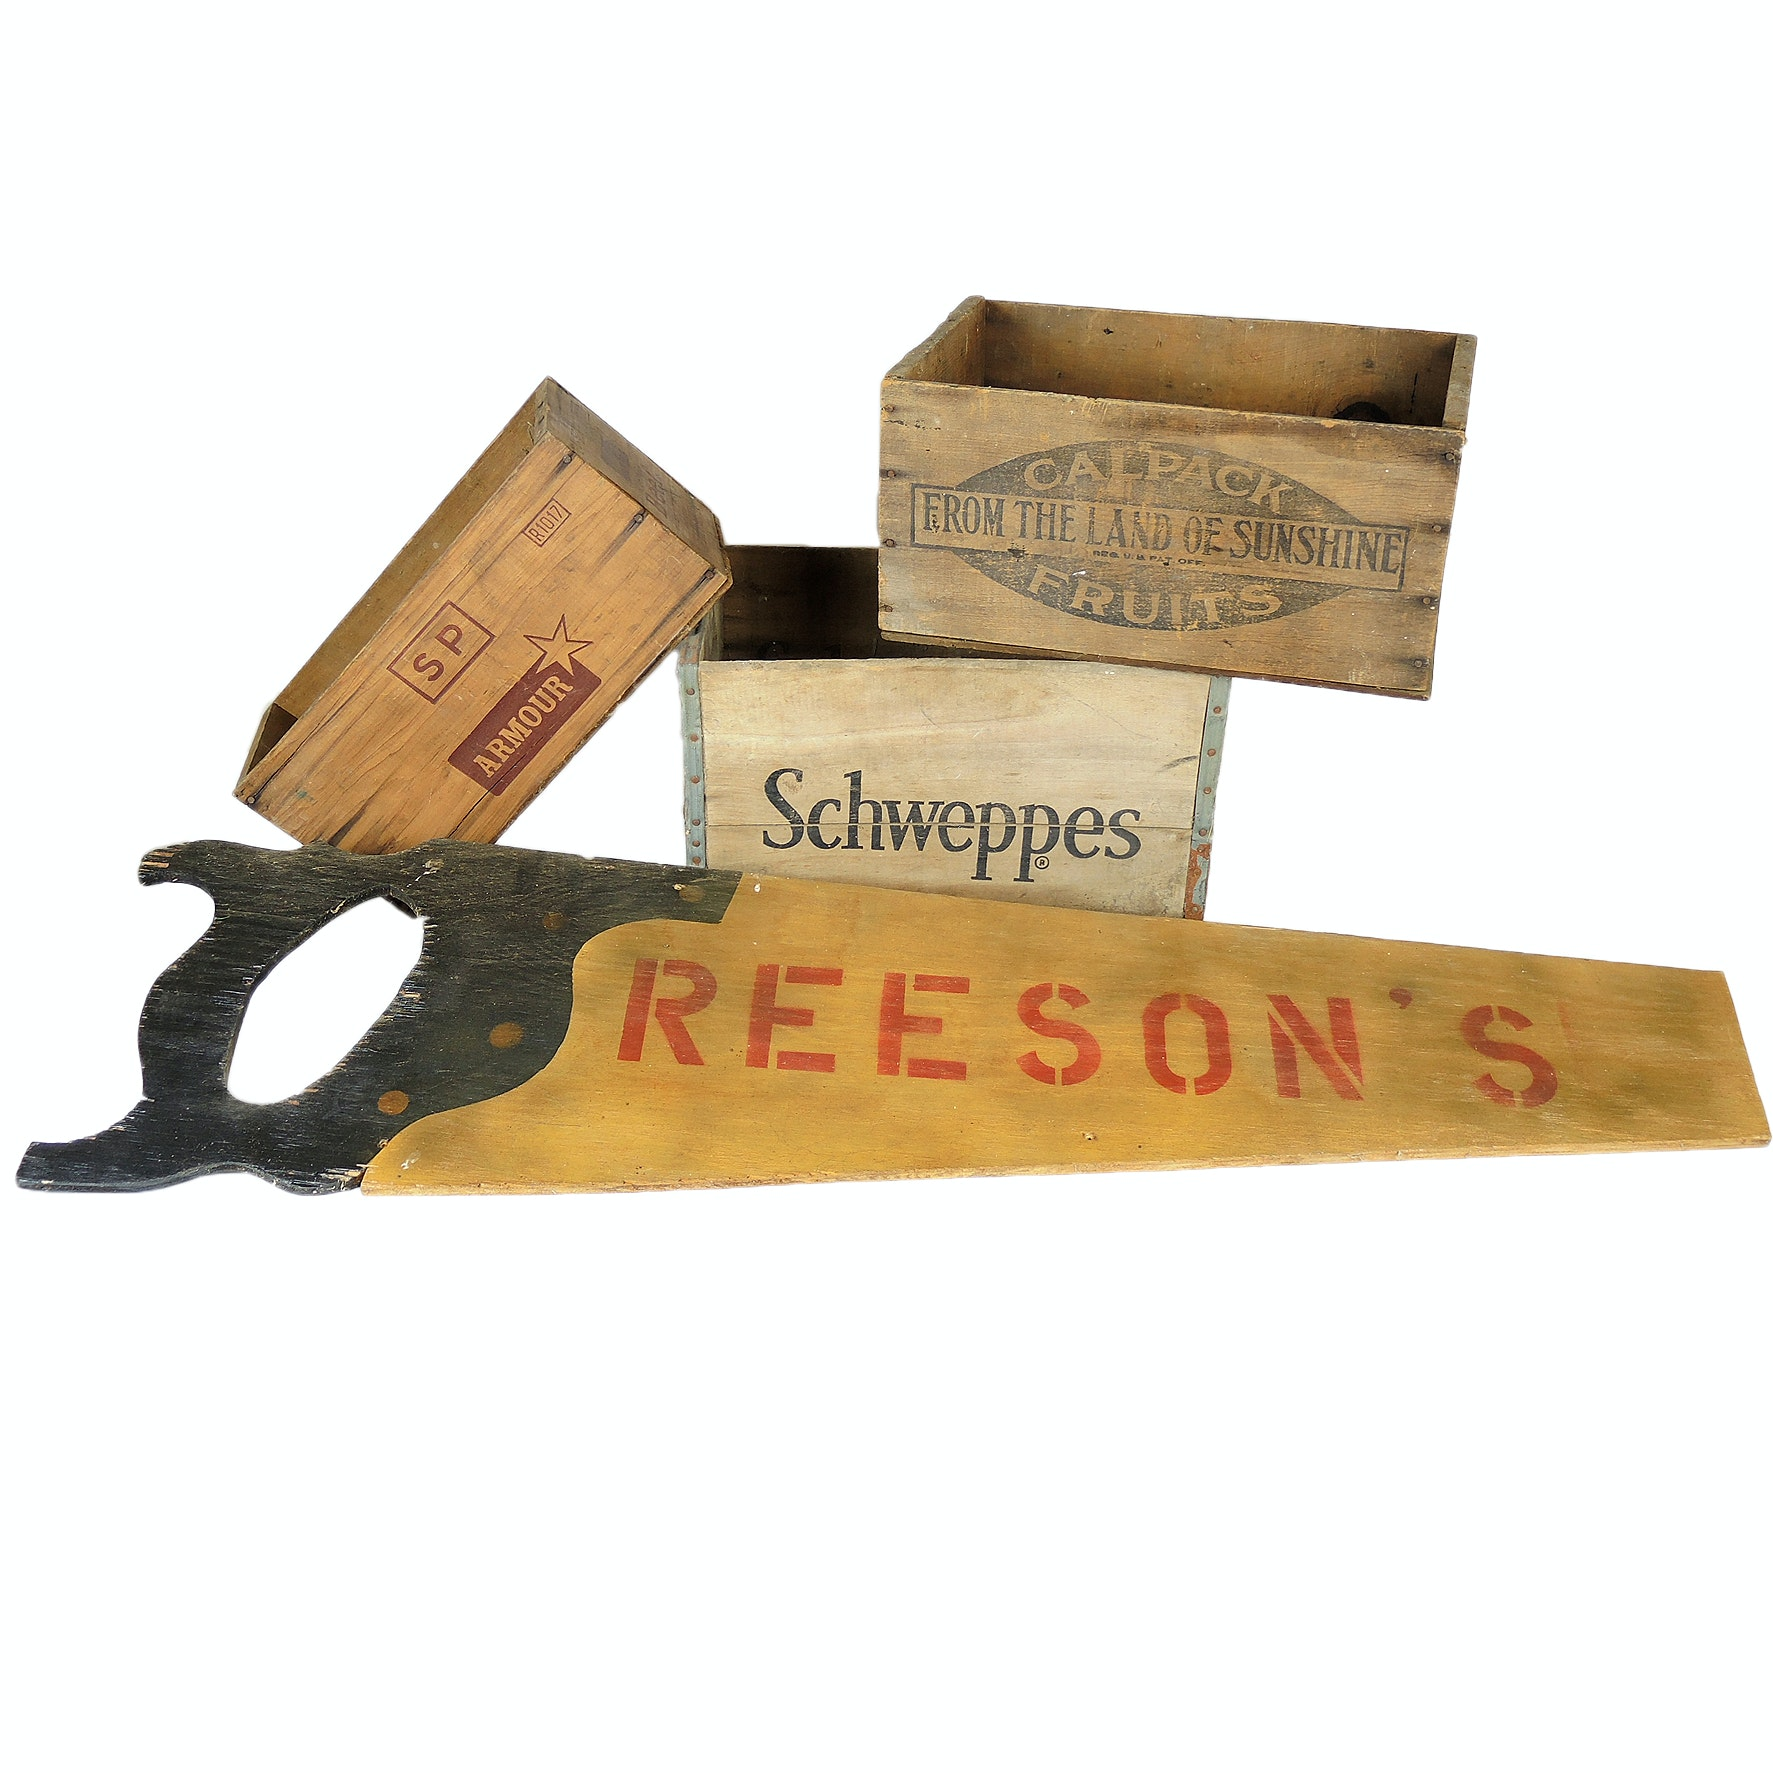 "Vintage Wooden Crates Featuring Schweppes and ""Reeson's"" Sign"